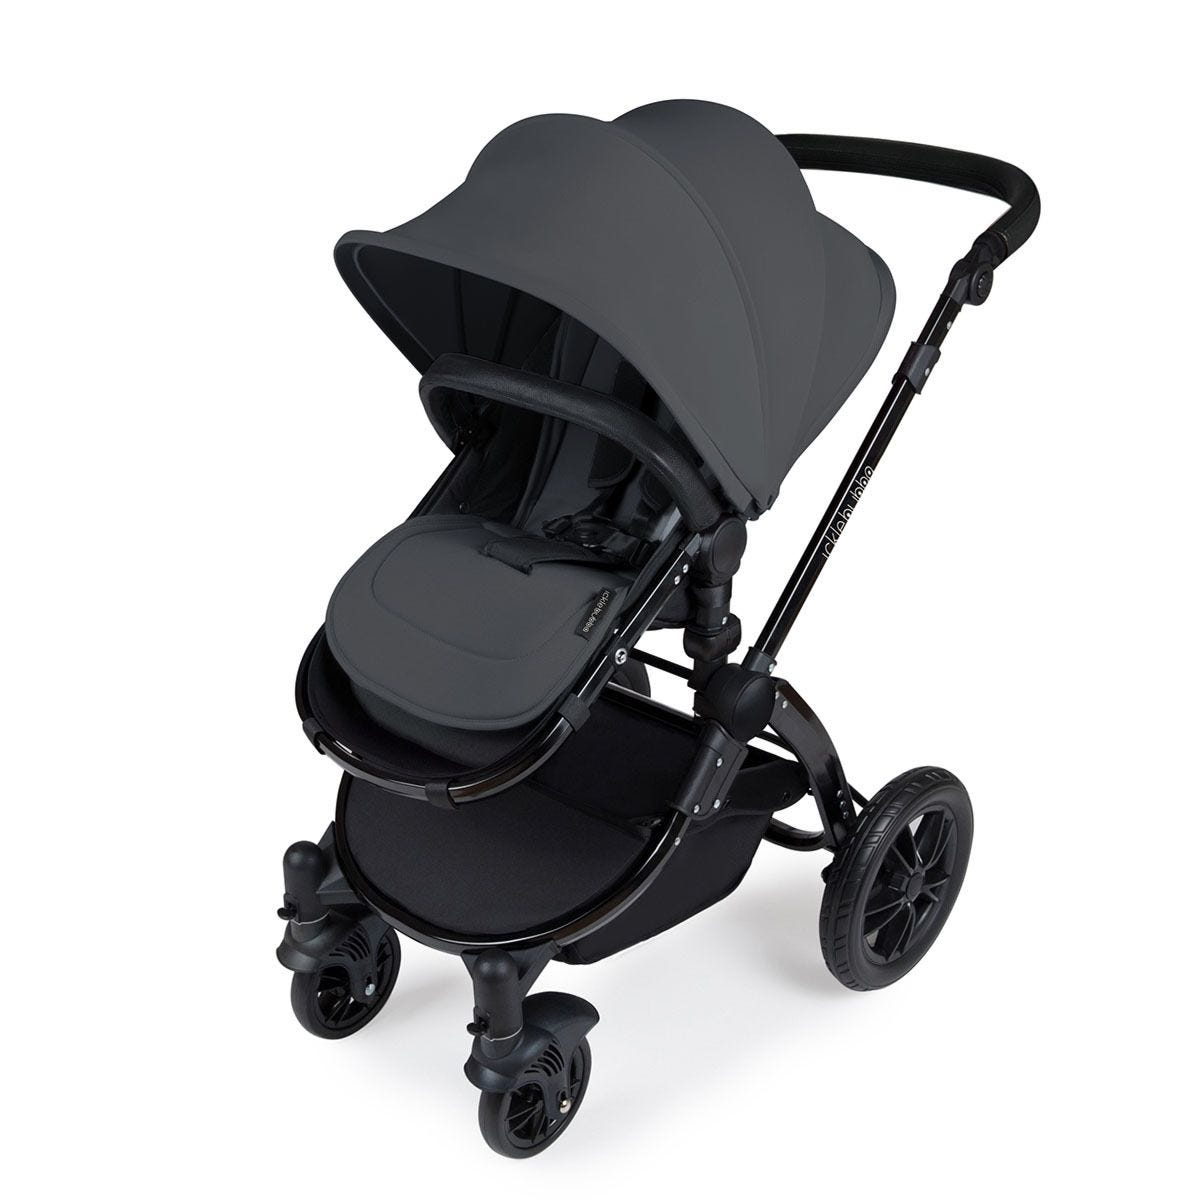 Ickle Bubba Stomp V3 All in One Travel System with Isofix Base - Graphite Grey on Black with Black Handles